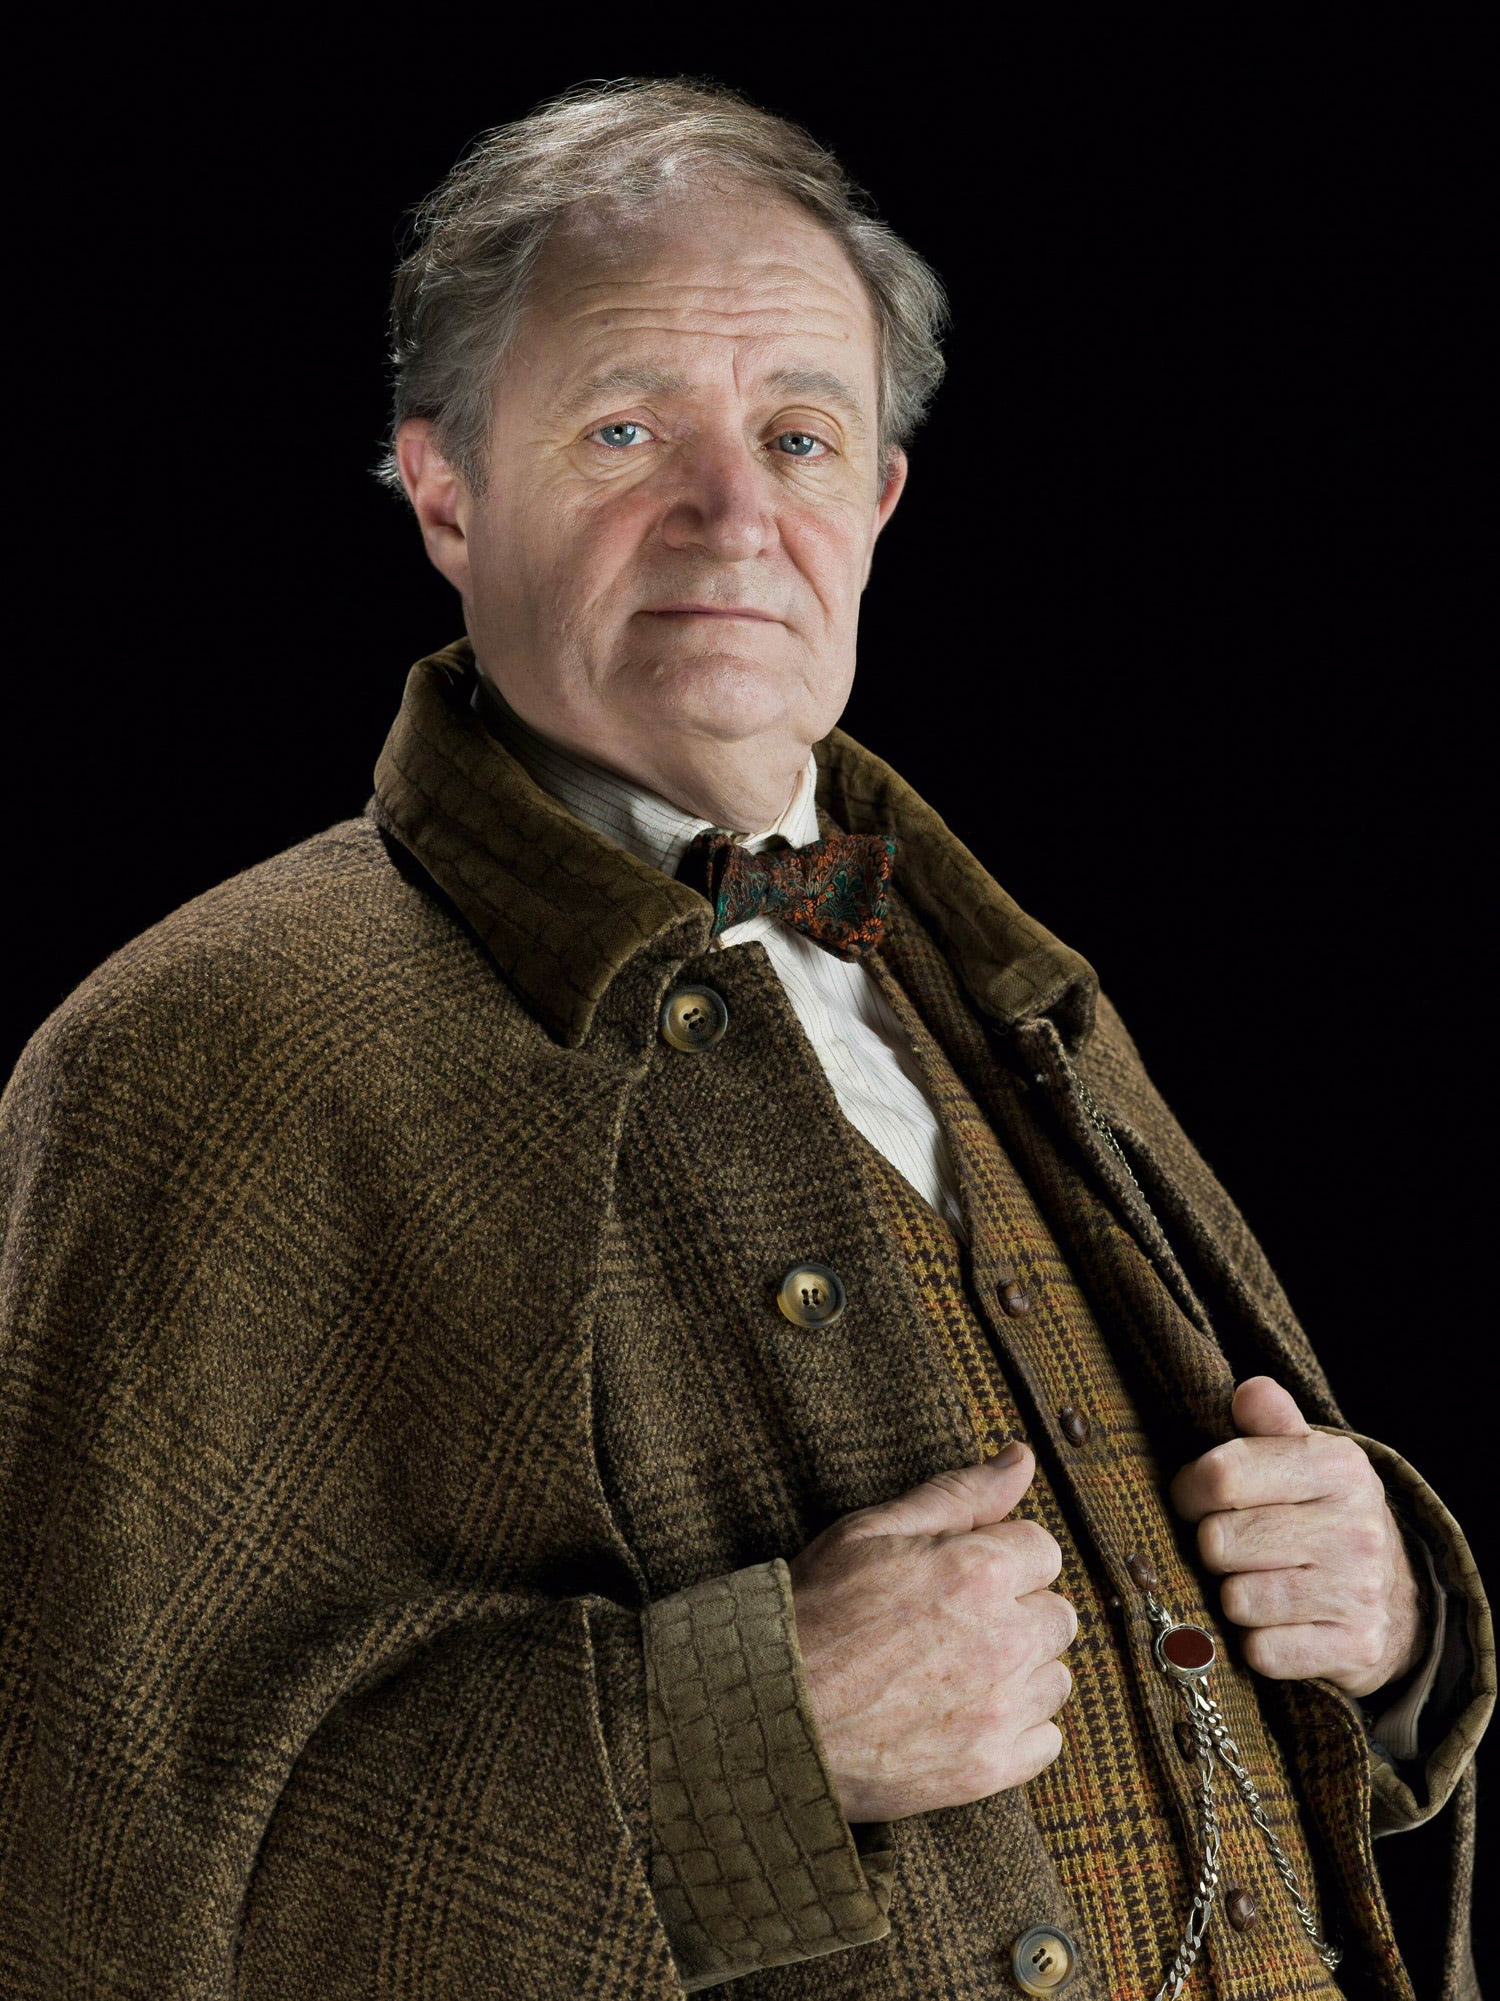 Portrait of Horace Slughorn